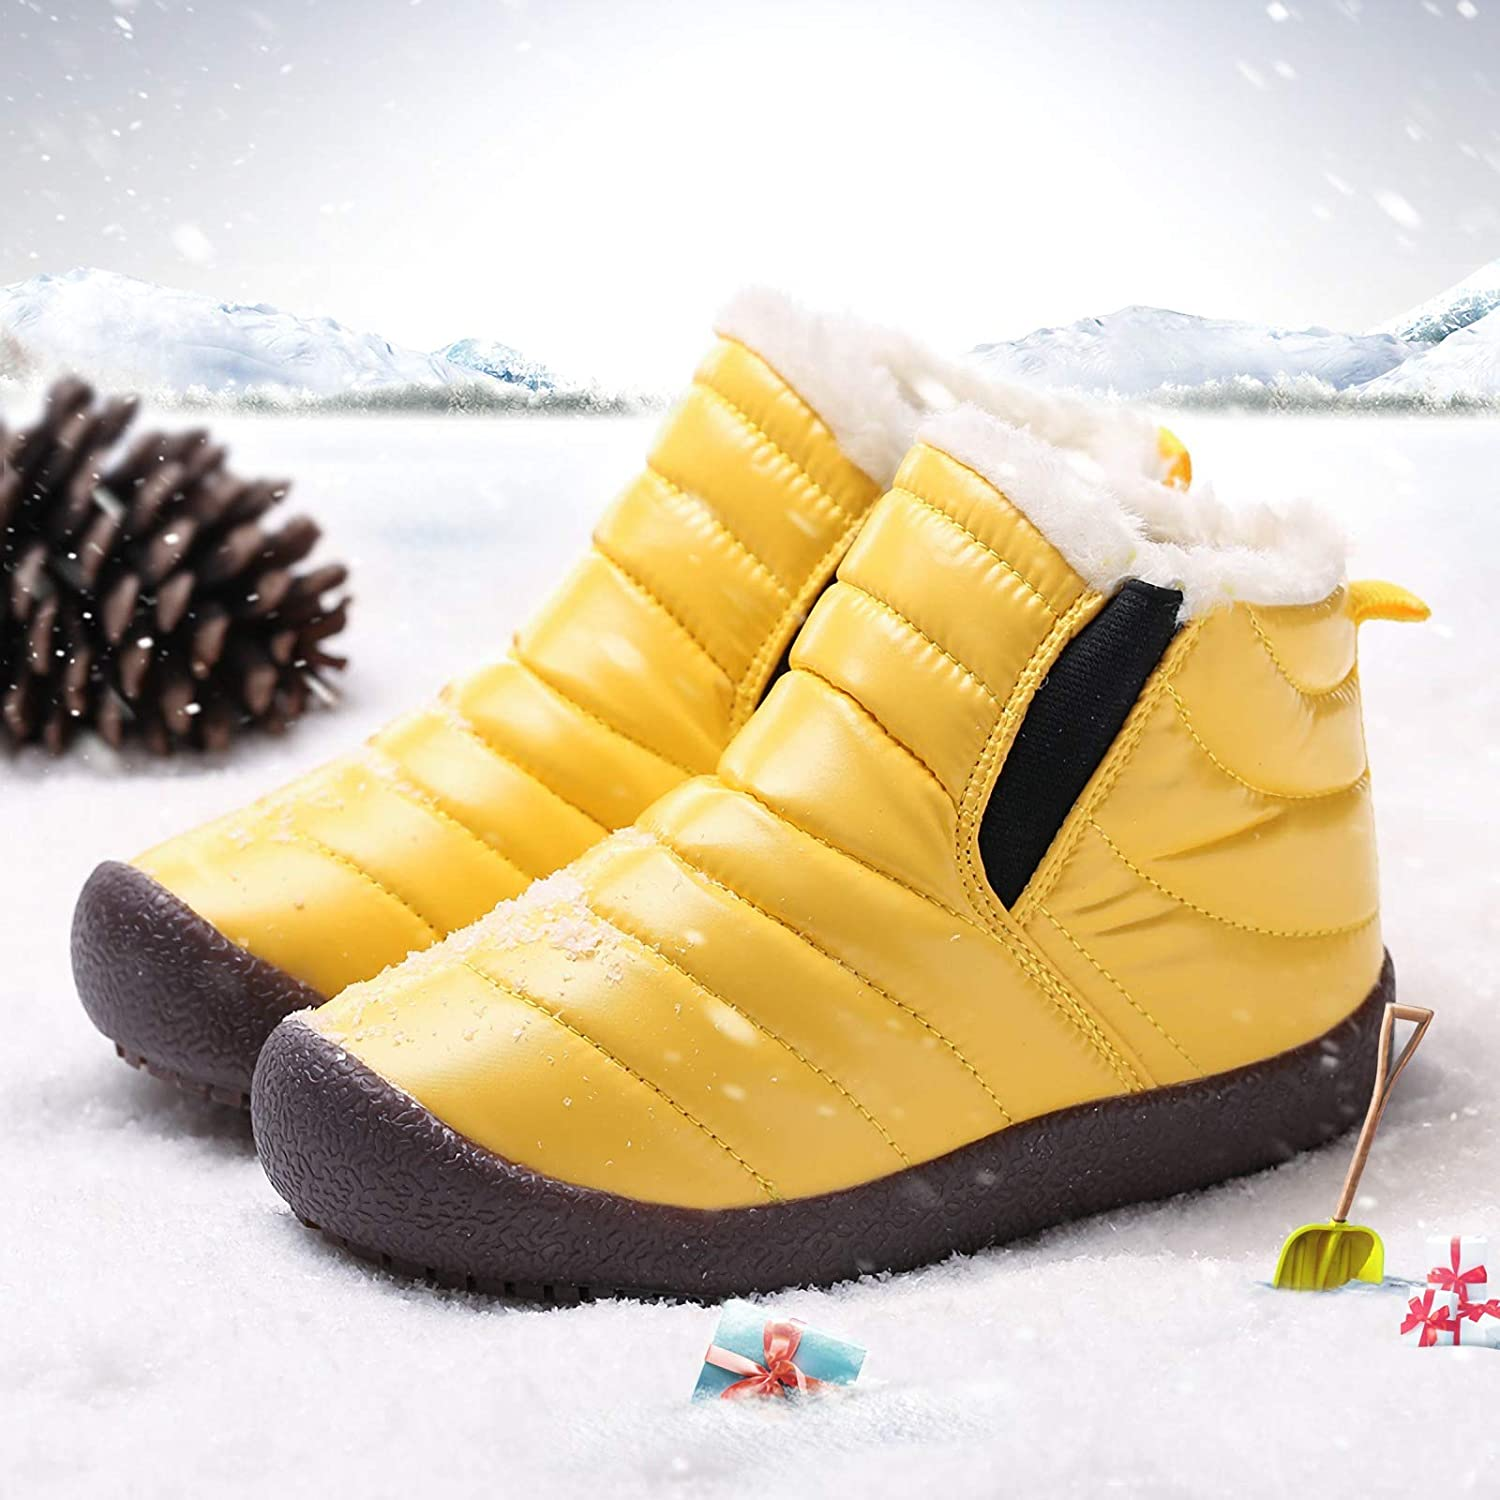 Ymombest Boys Girls Waterproof Snow Boots Winter Fur Lined Warm Shoes Insulated Rubber Nonslip Children Ankle Boots